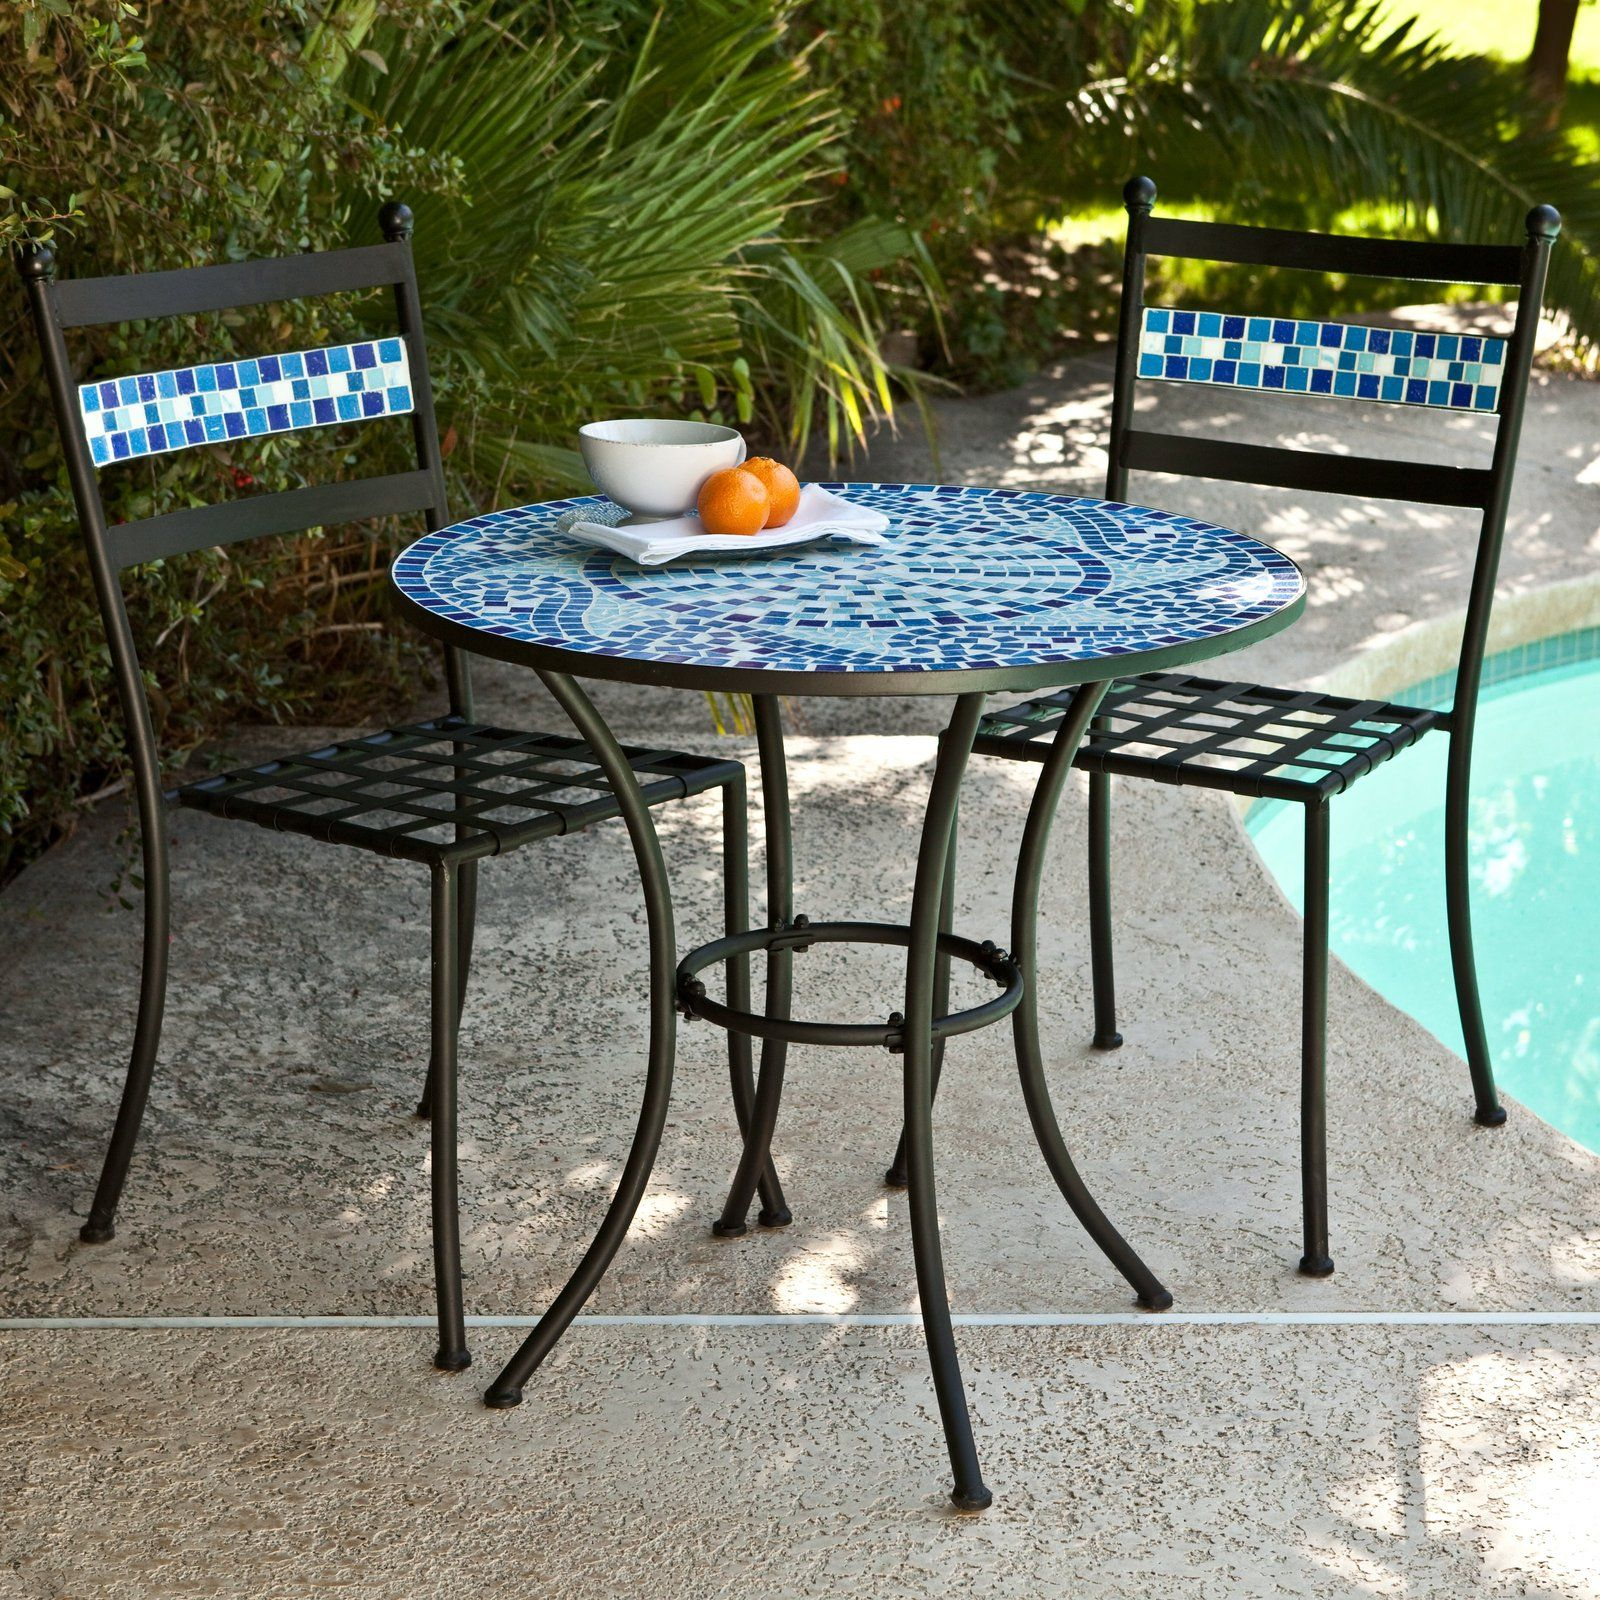 Patio Bistro Set With Chairs And Mosaic Tile Table Outdoor Patio Furniture Sets Outdoor Patio Decor Outdoor Bistro Set